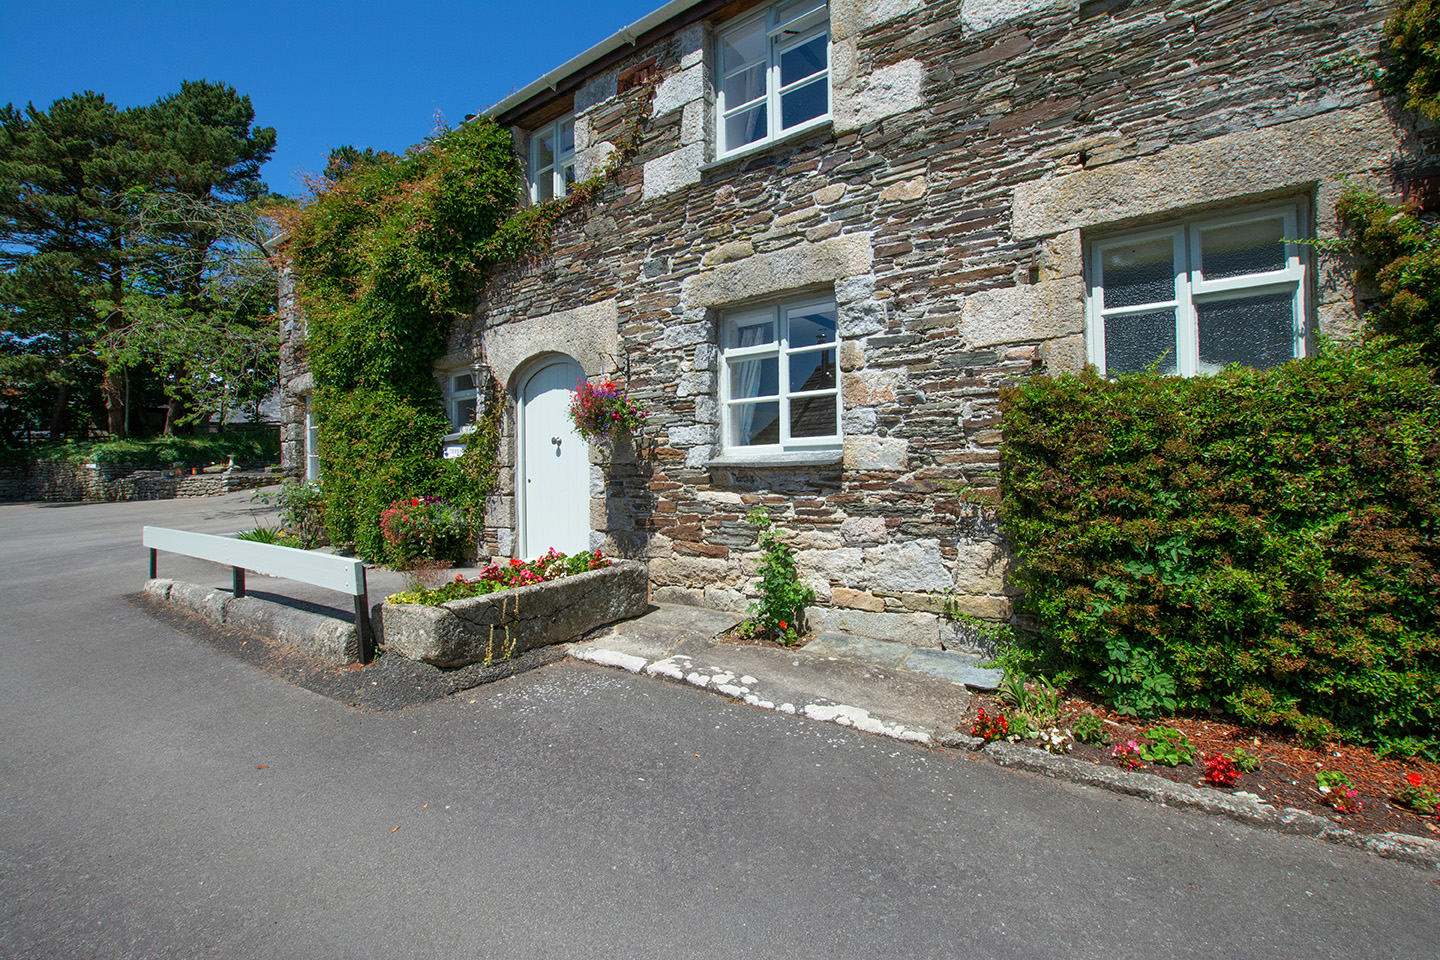 The exterior of Butterwell luxury self catering converted barn holiday cottage at Penrose Burden in North Cornwall 01.jpg